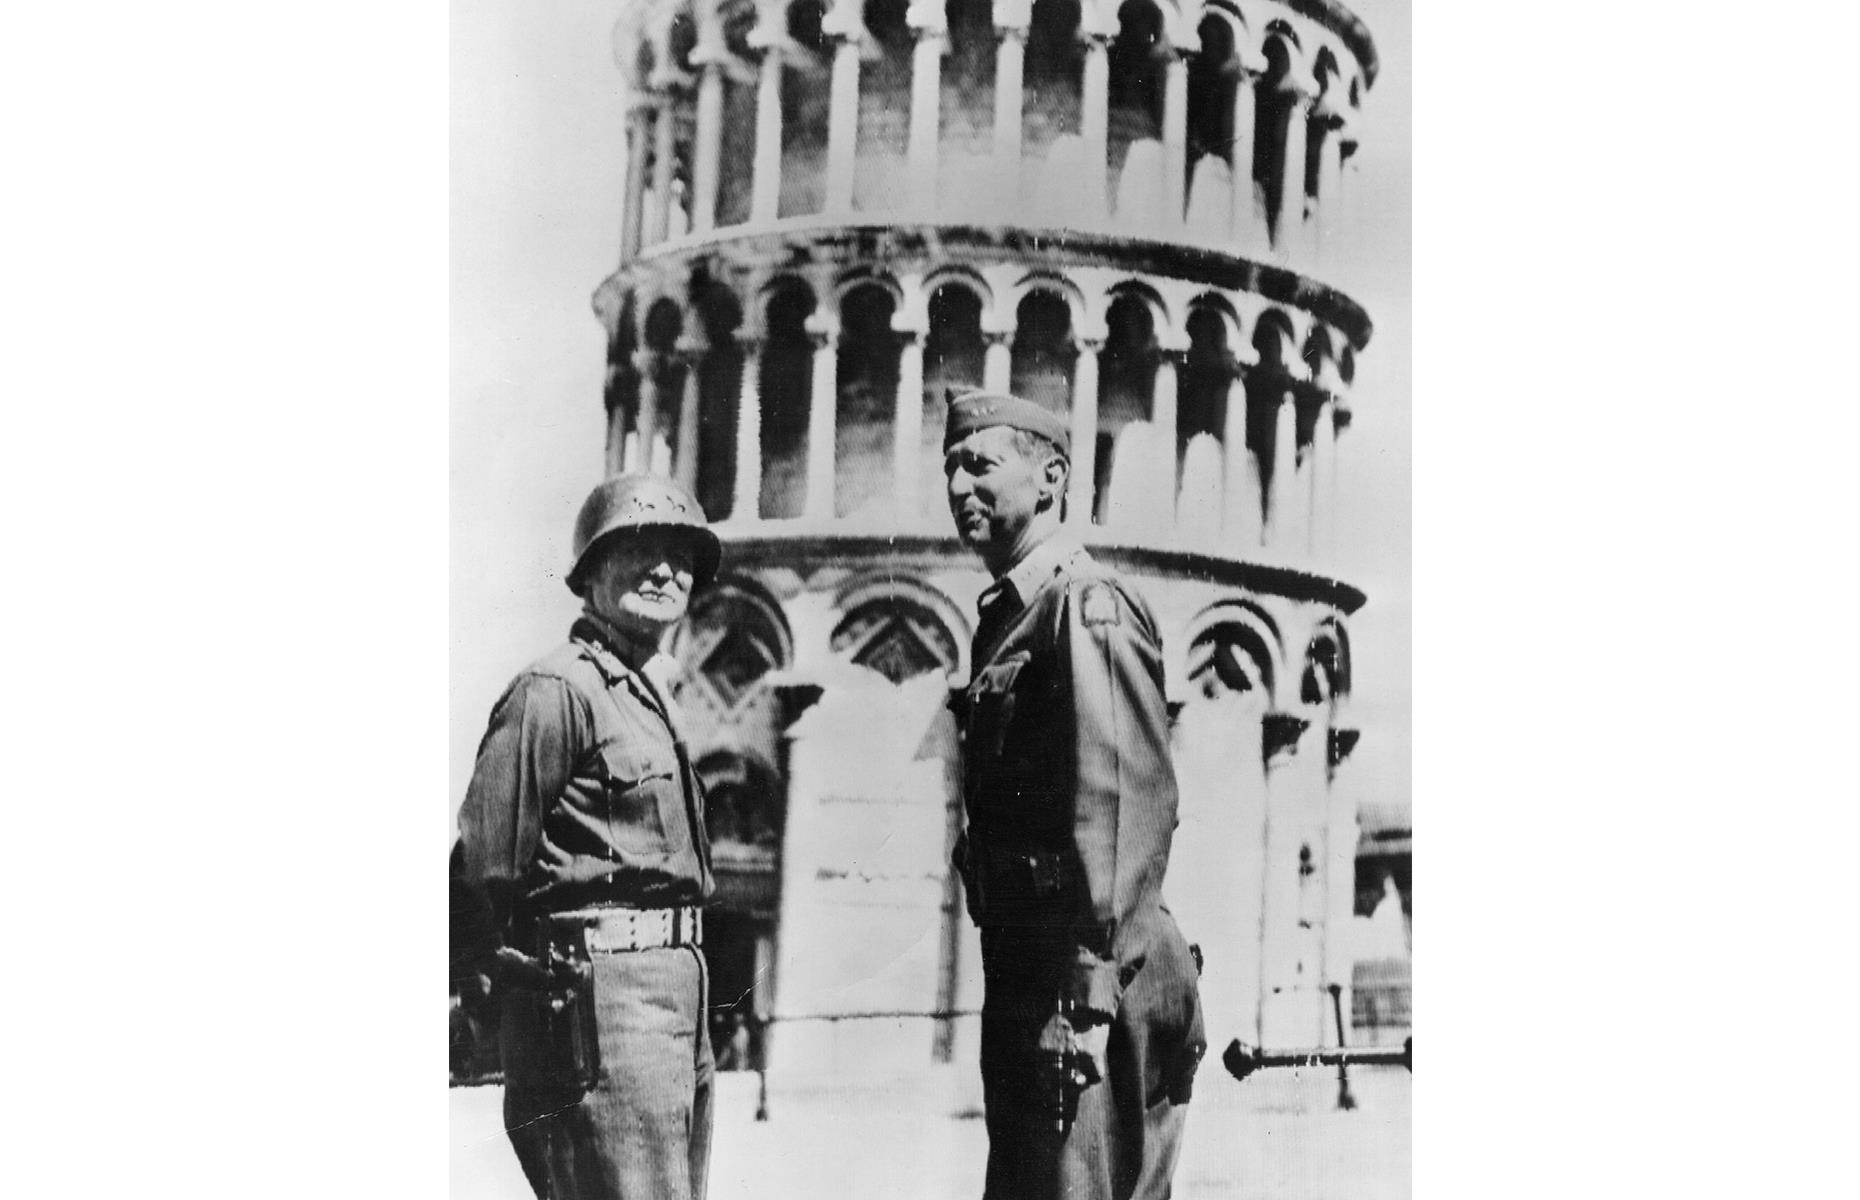 Slide 8 of 32: The Leaning Tower of Pisa is a mind-boggling feat of medieval architecture and a symbol of one of Italy's prettiest cities. But its life was almost cut short. Leon Weckstein, a GI in the United States Army, was under orders to demolish the beautiful tower if necessary, since it was thought that German forces occupied it. The tower's future hung in the balance. It's pictured here in 1944 after the undamaged tower had finally fallen to the Allies.